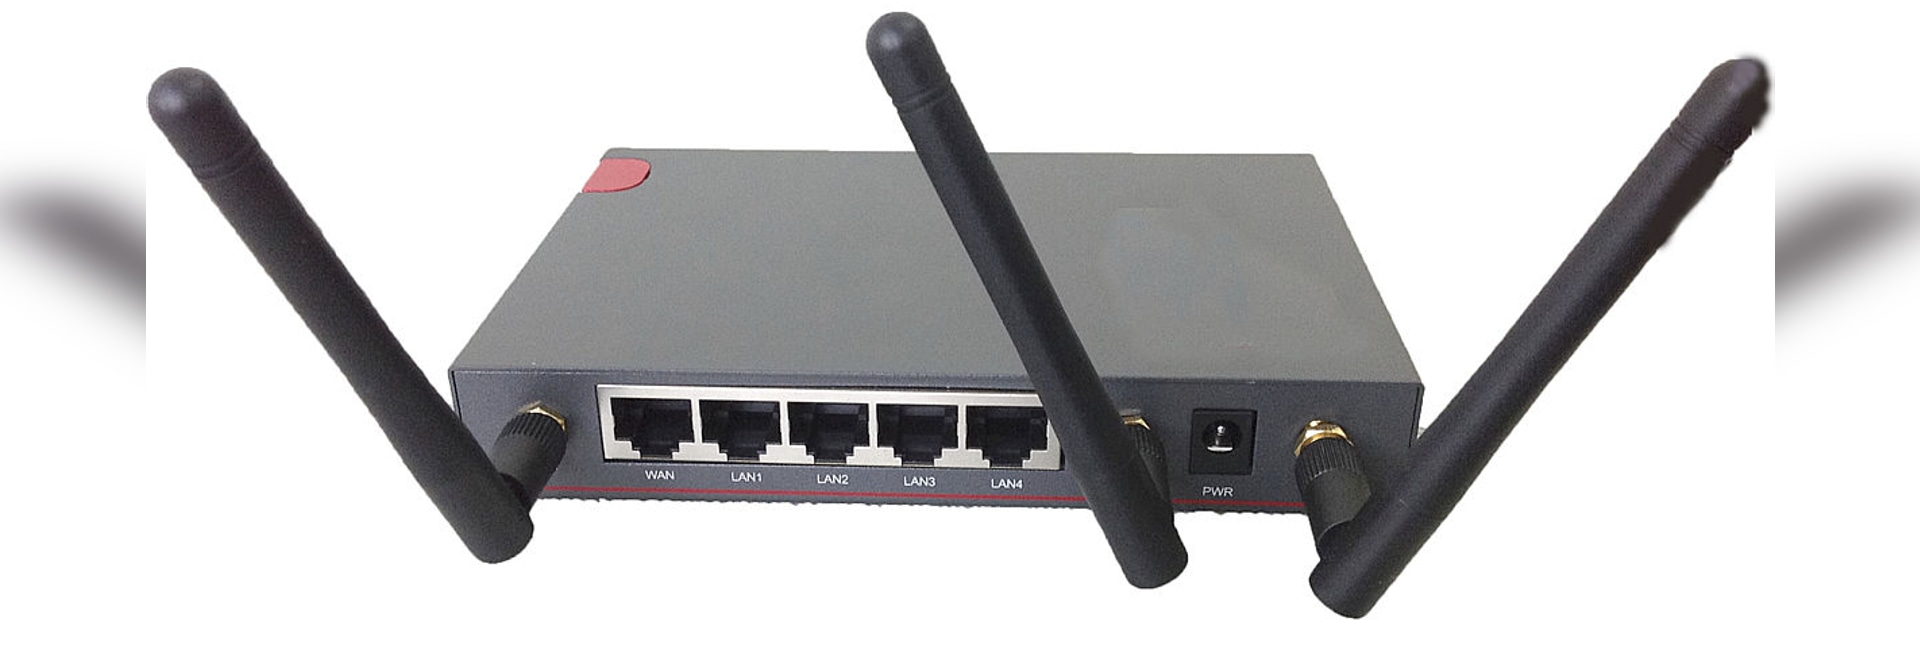 Complete Analysis On The Dual Sim Router